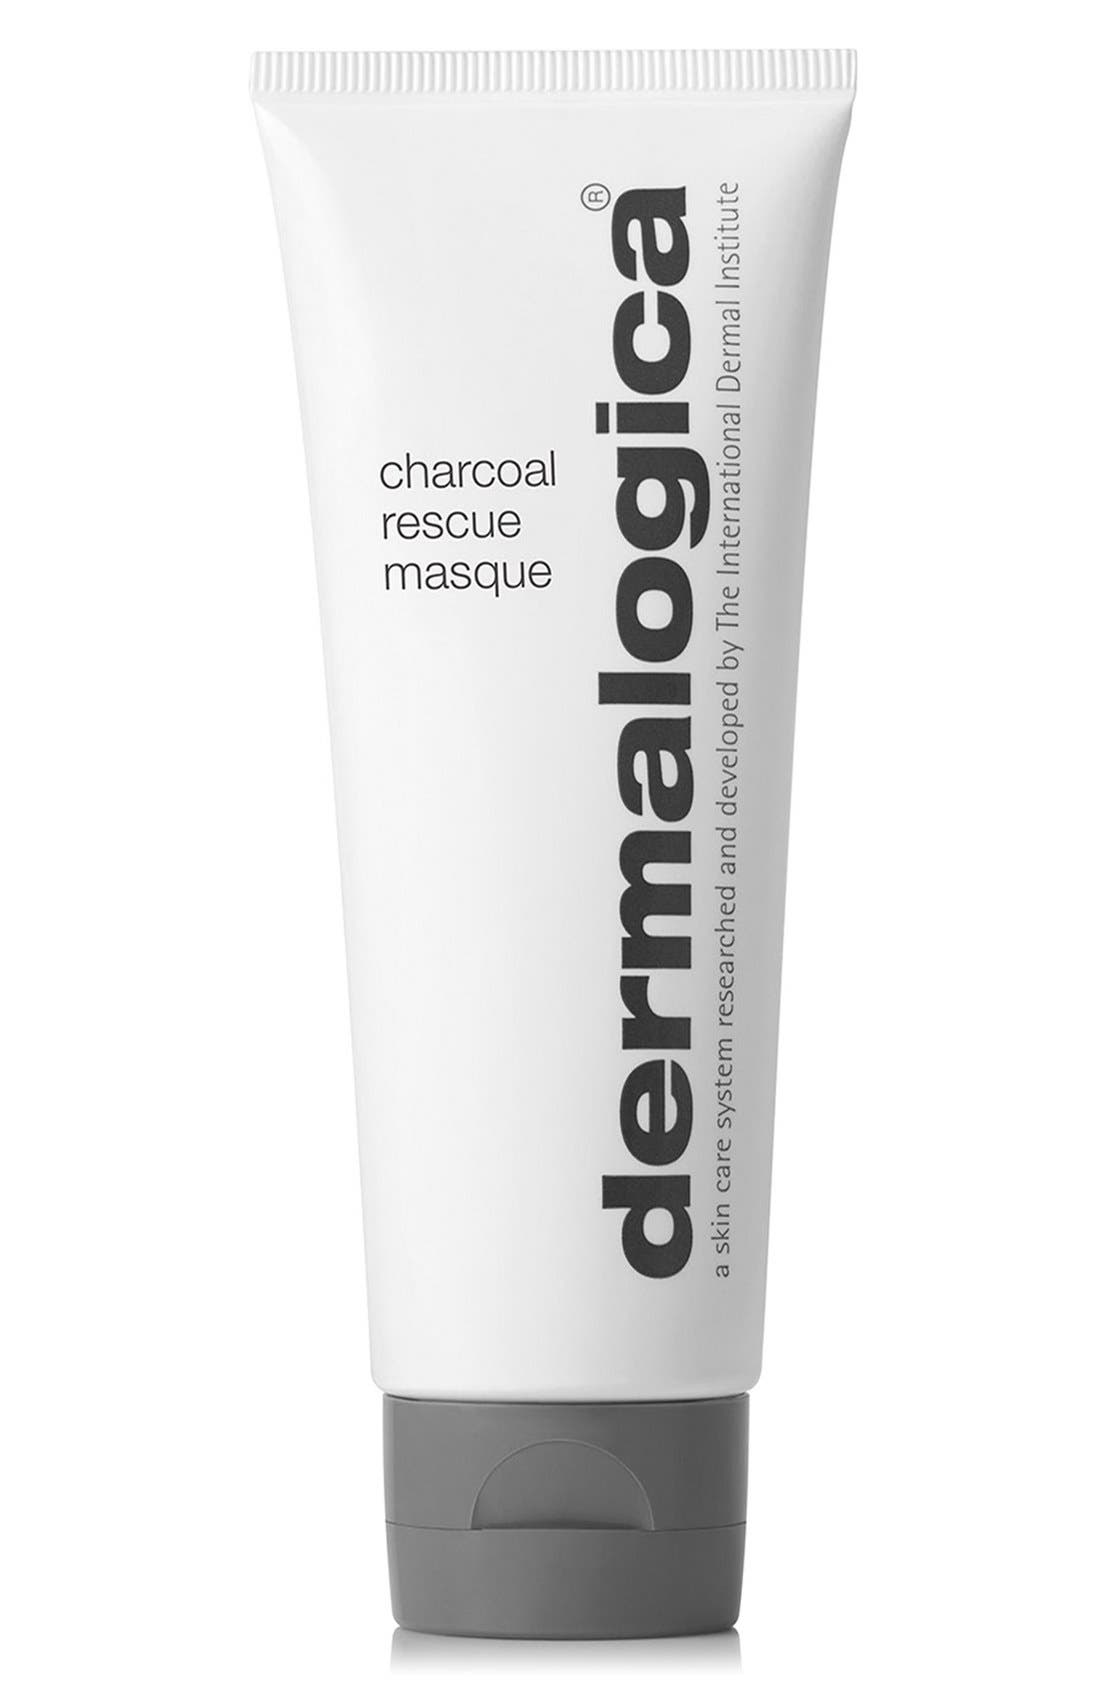 Charcoal Rescue Masque,                             Main thumbnail 1, color,                             NO COLOR